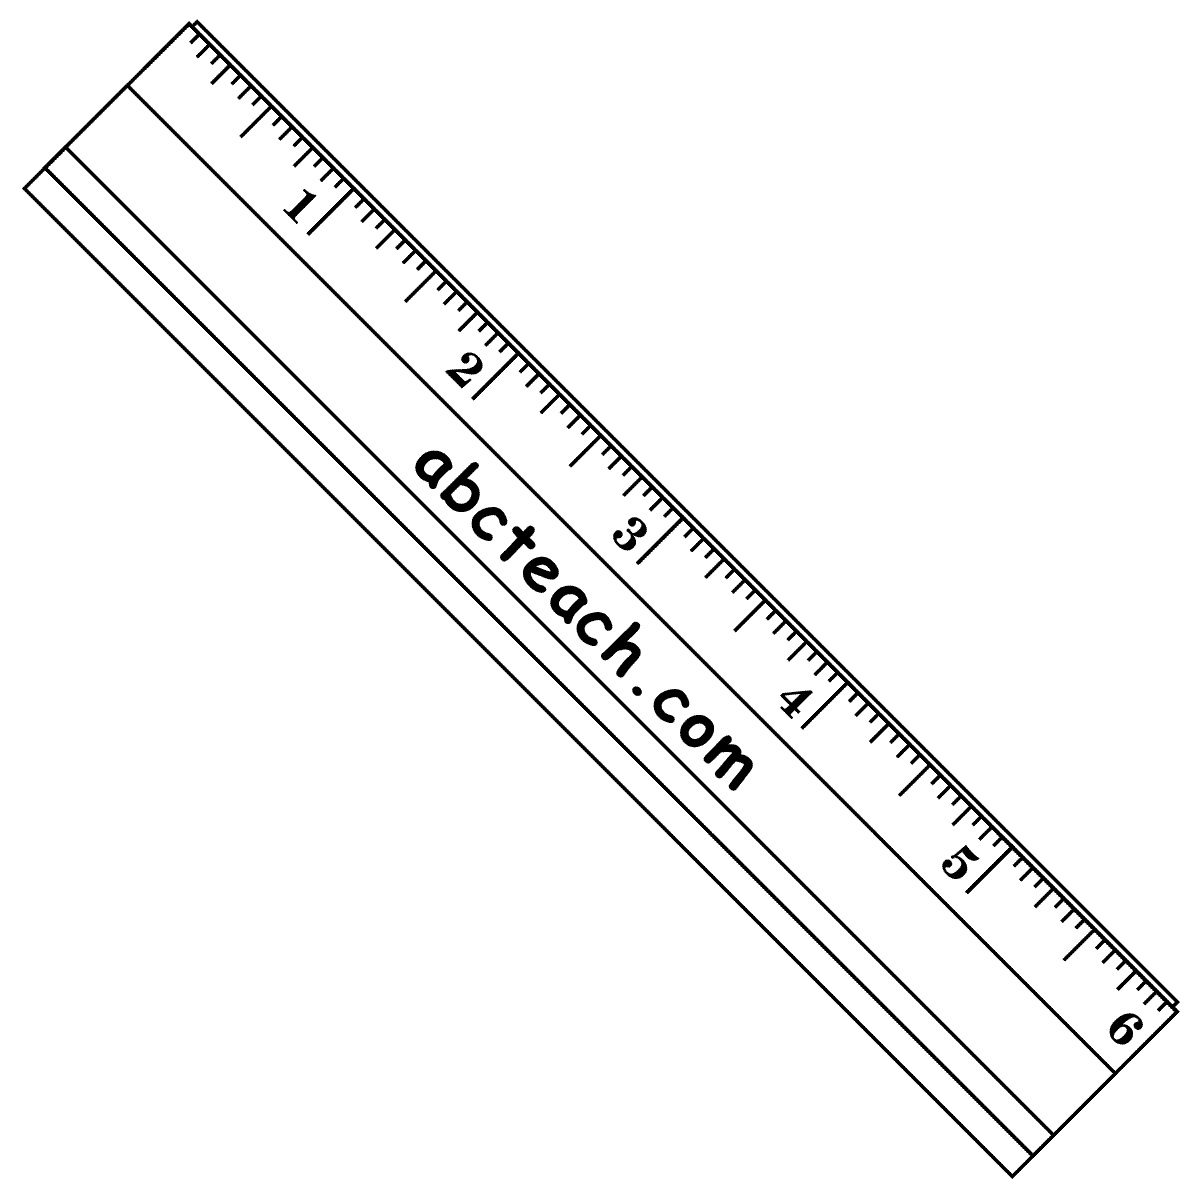 Ruler Clipart To 1 16 Inch| (50)++ Amazing Cliparts #rct11I